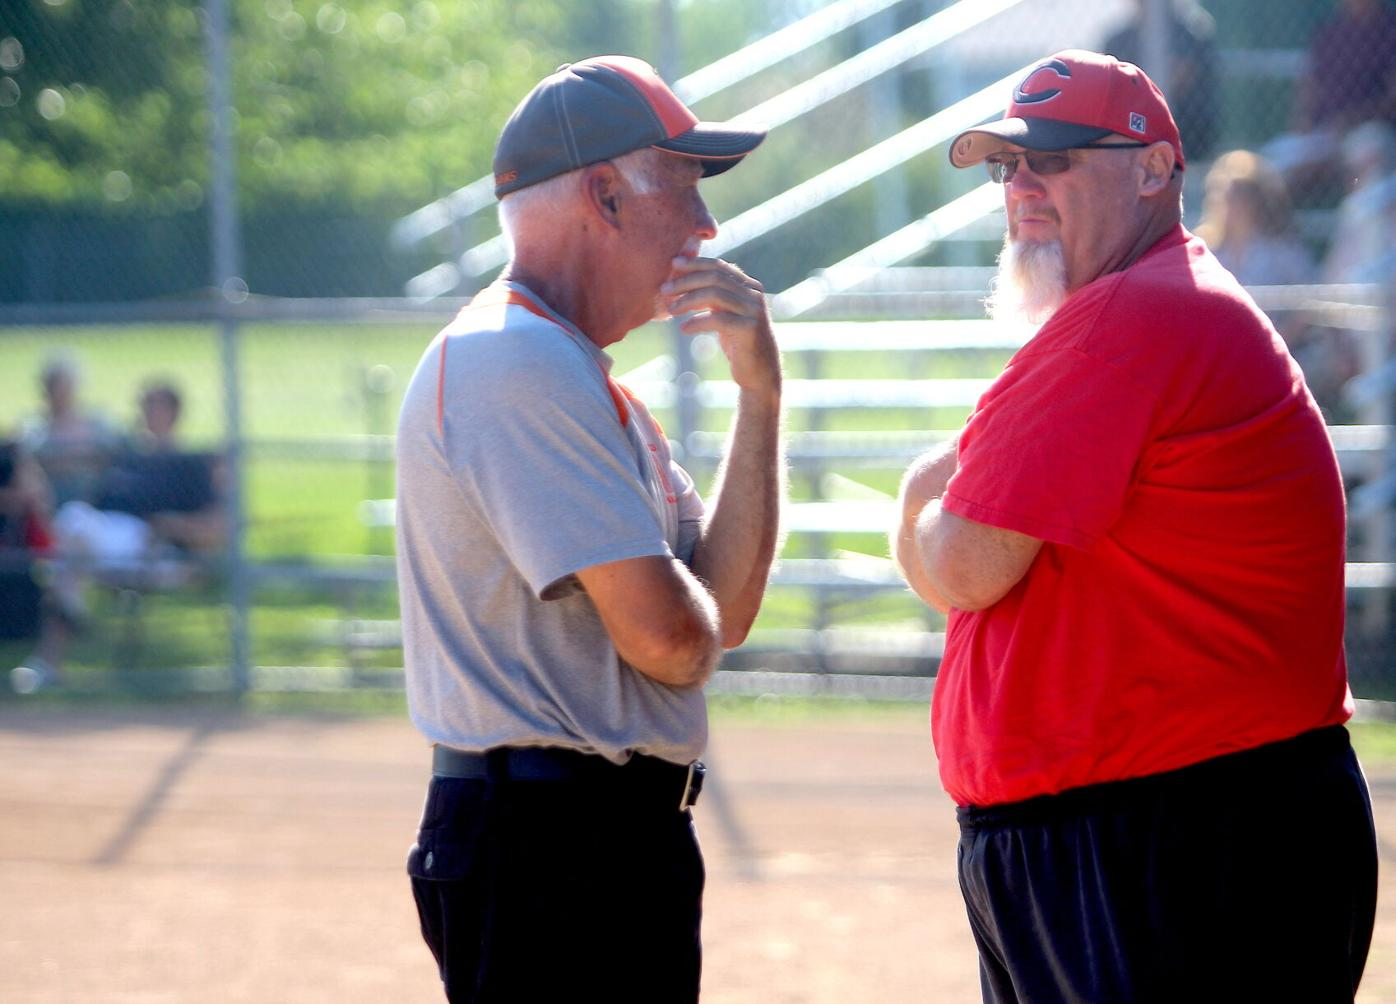 Bradfield named All-Courier softball coach of the year